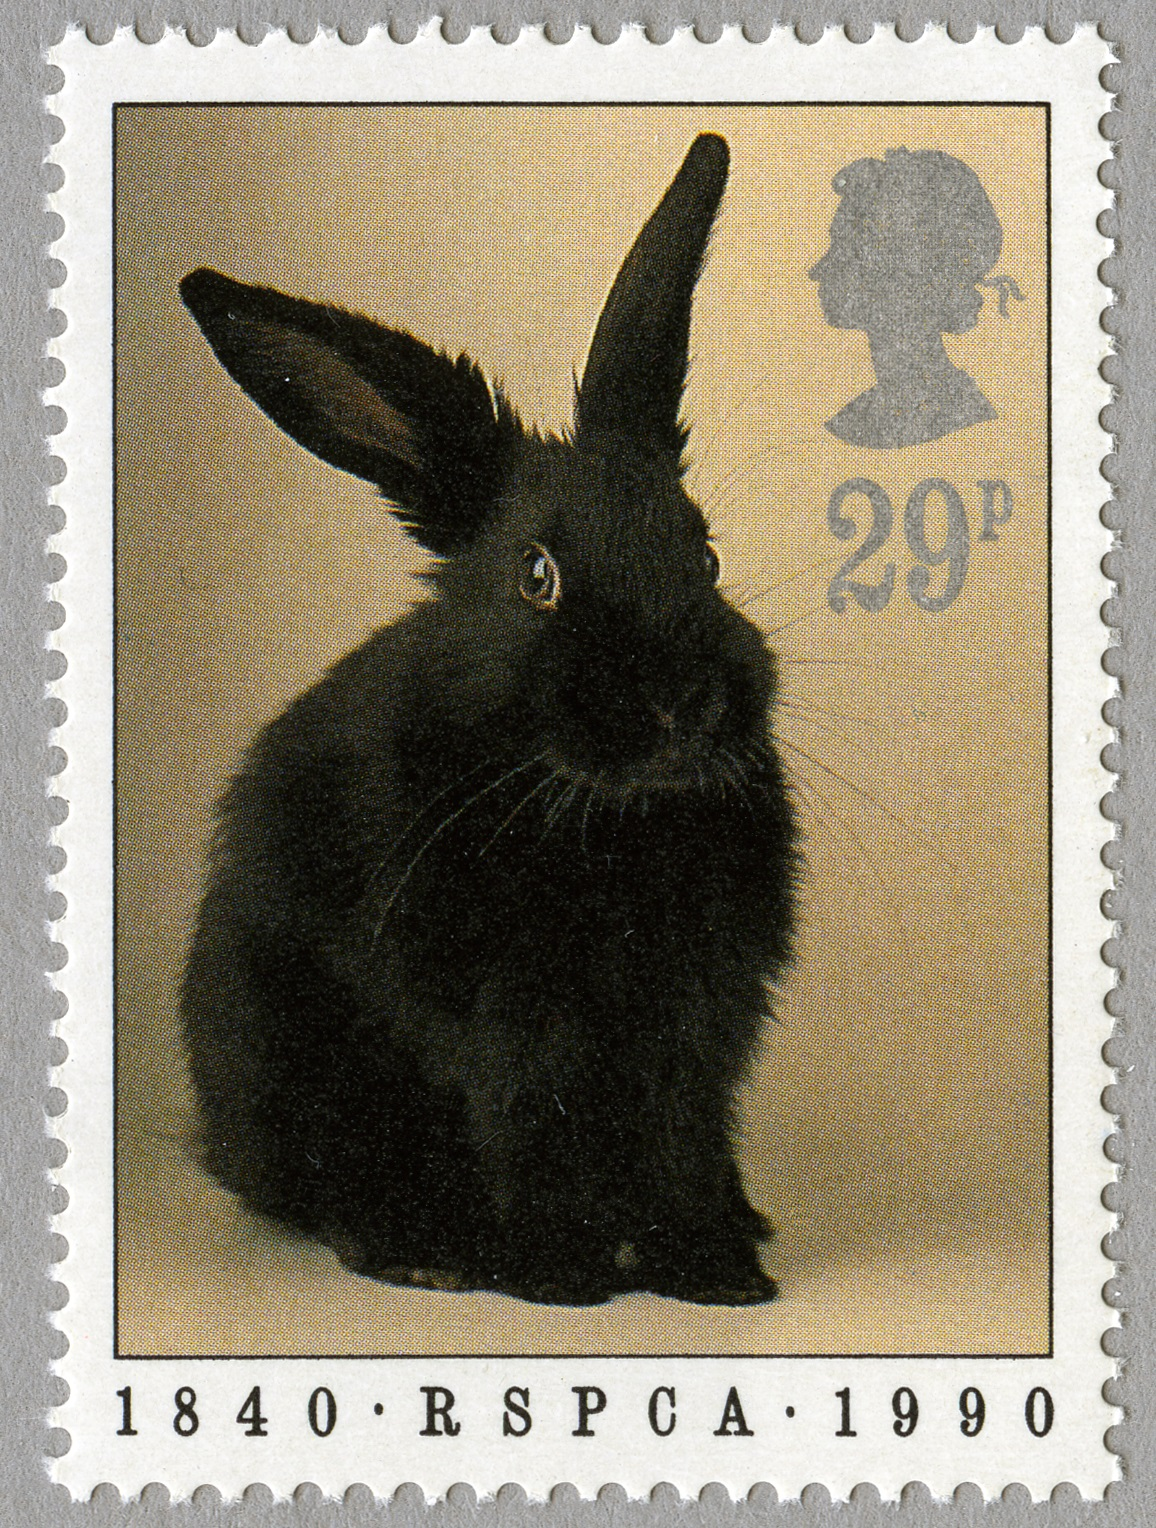 A black rabbit on a 29 pence stamp.